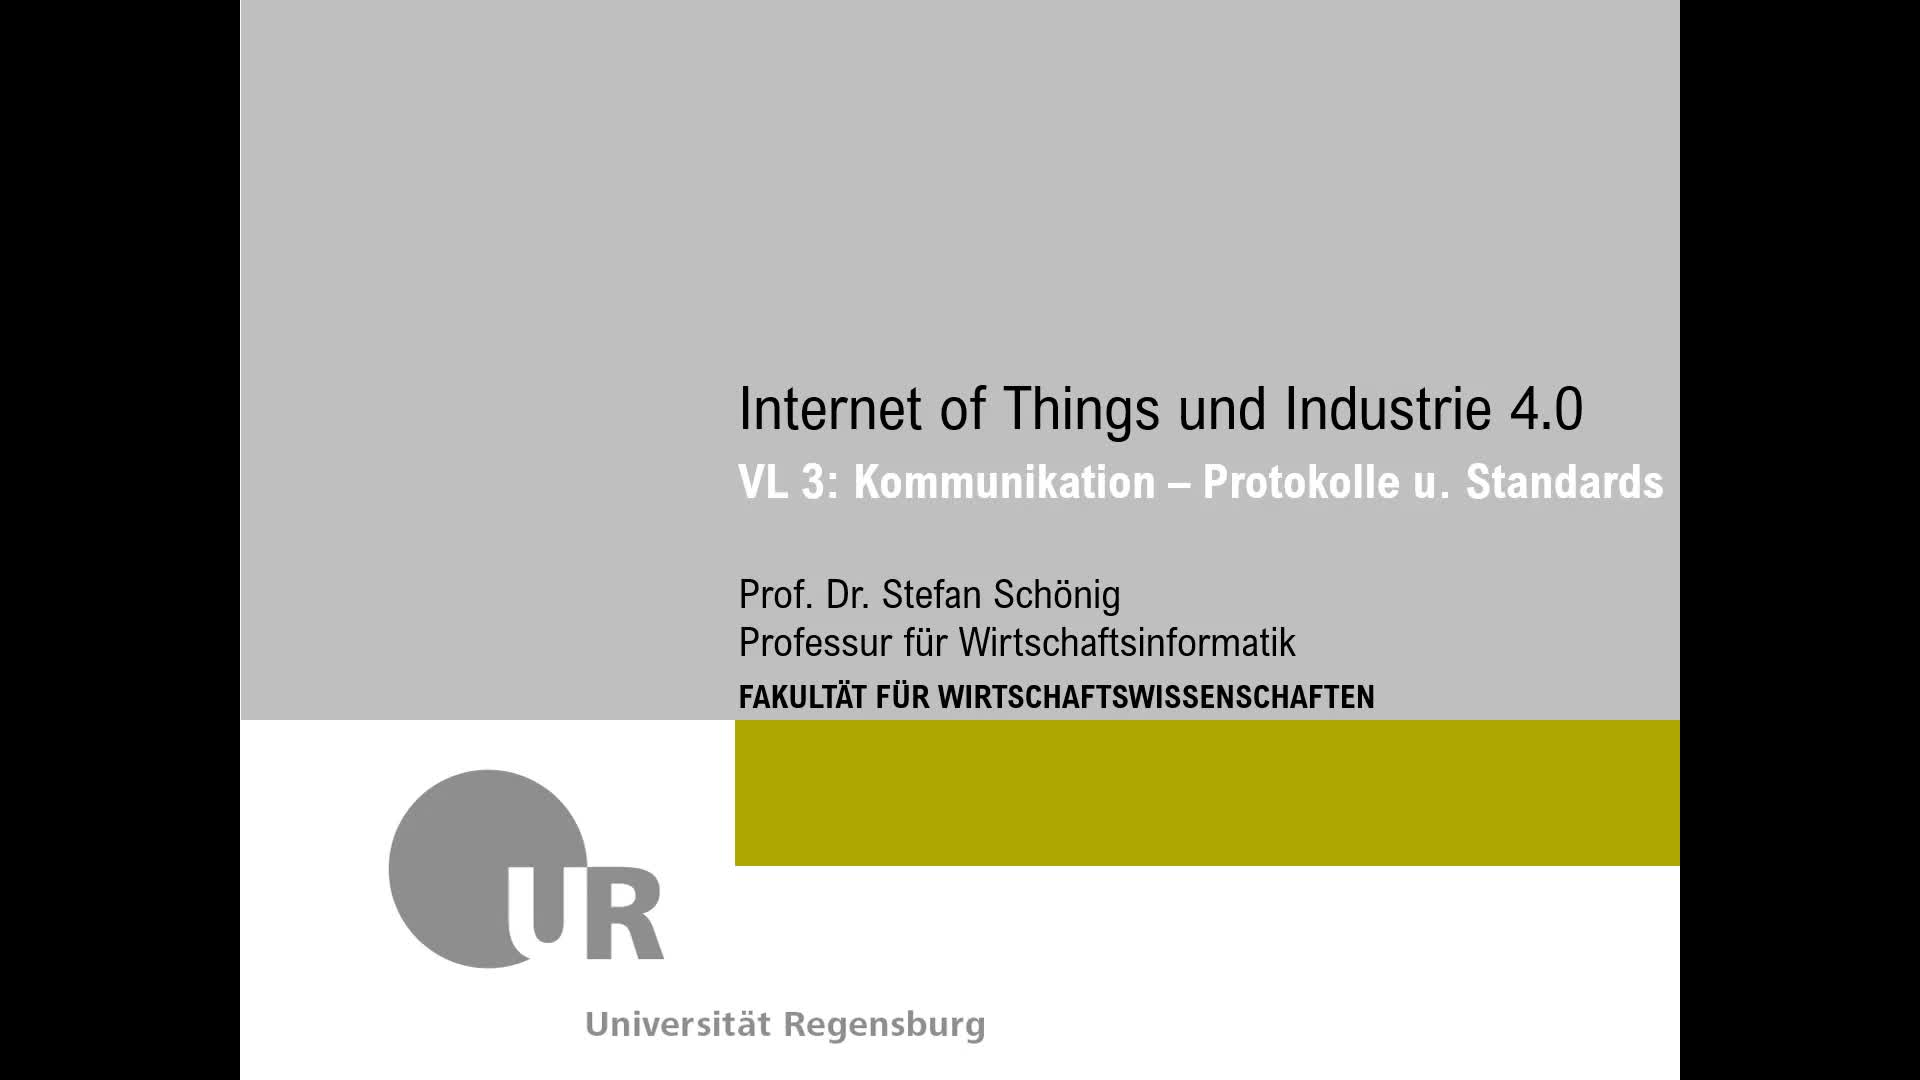 SS 2020 - Internet of Things und Industrie 4.0 - Kapitel 3 (Protokolle - Schichten)